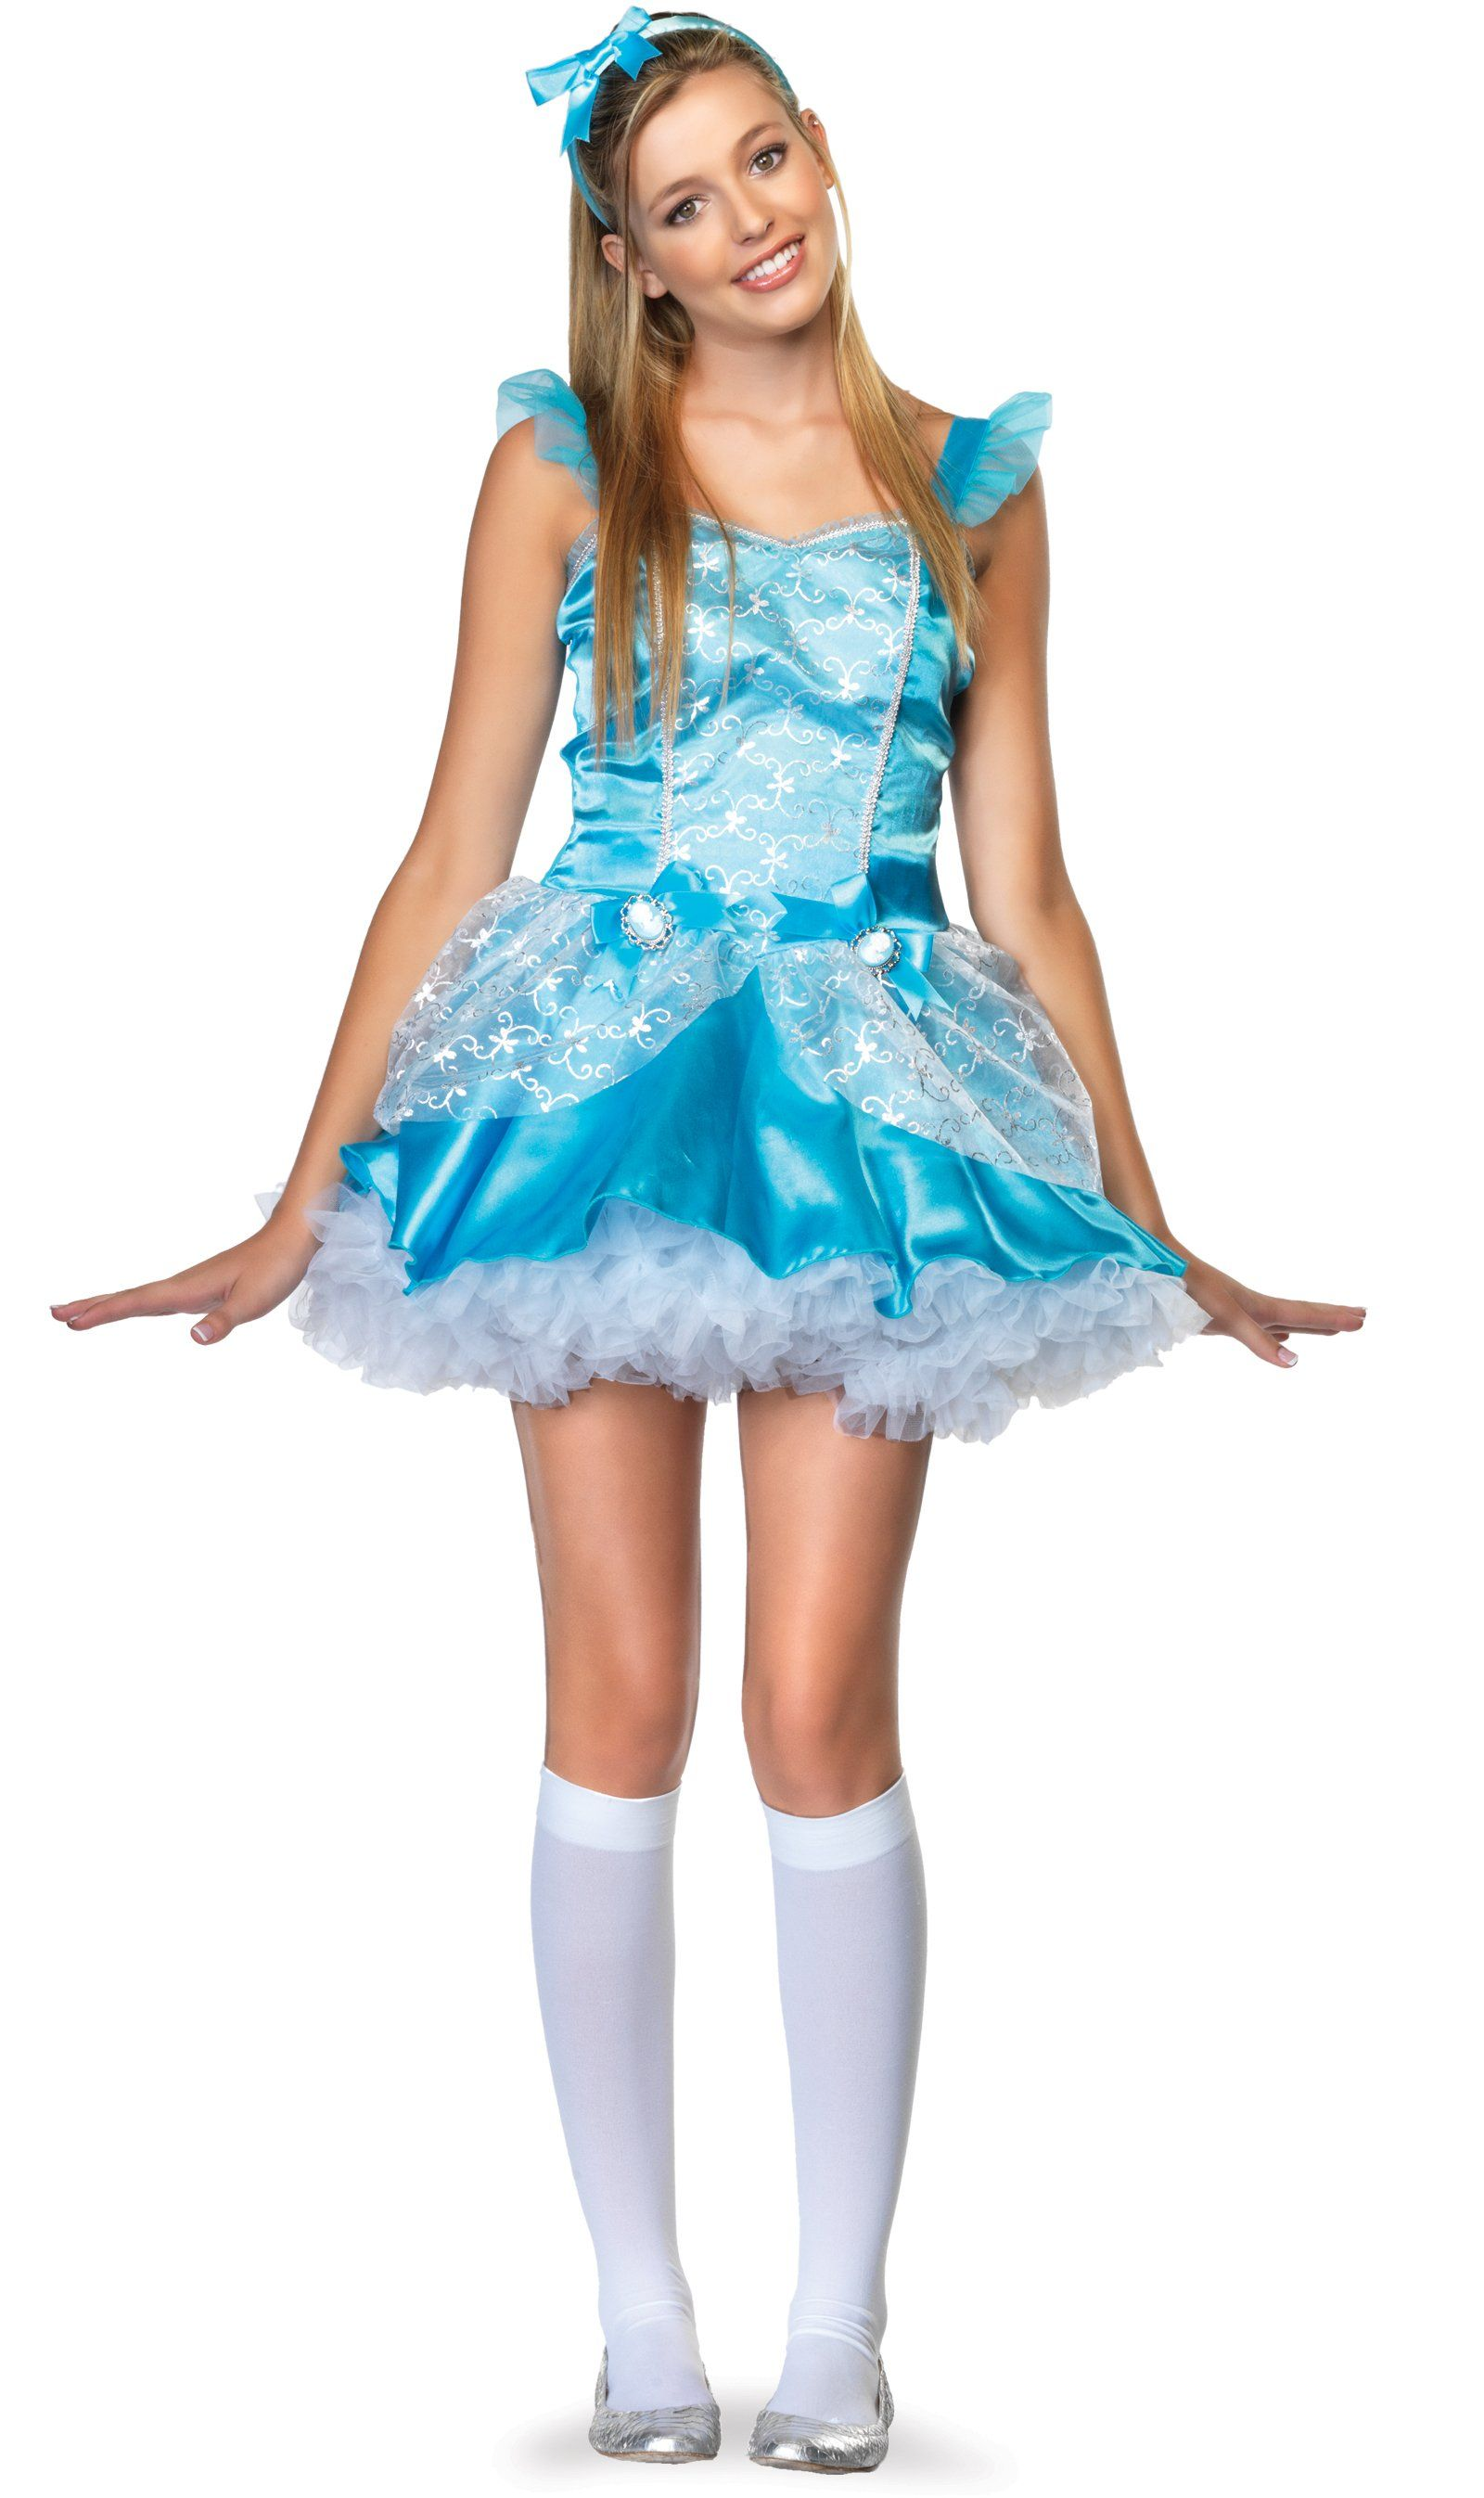 Teenager Kostüme Fairy Tale Princess Teen Costume 24 99 Costumes